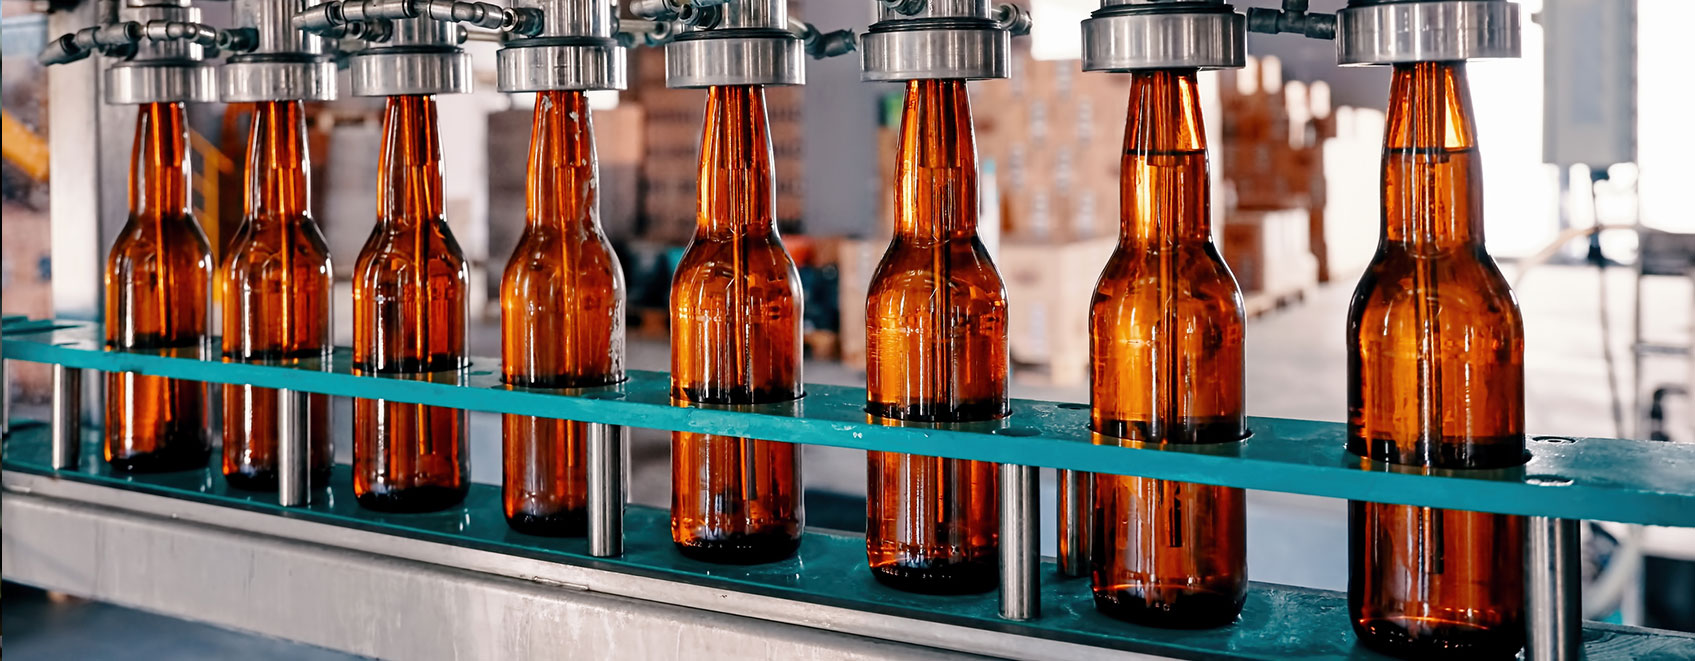 row of bottles on brewery assembly line